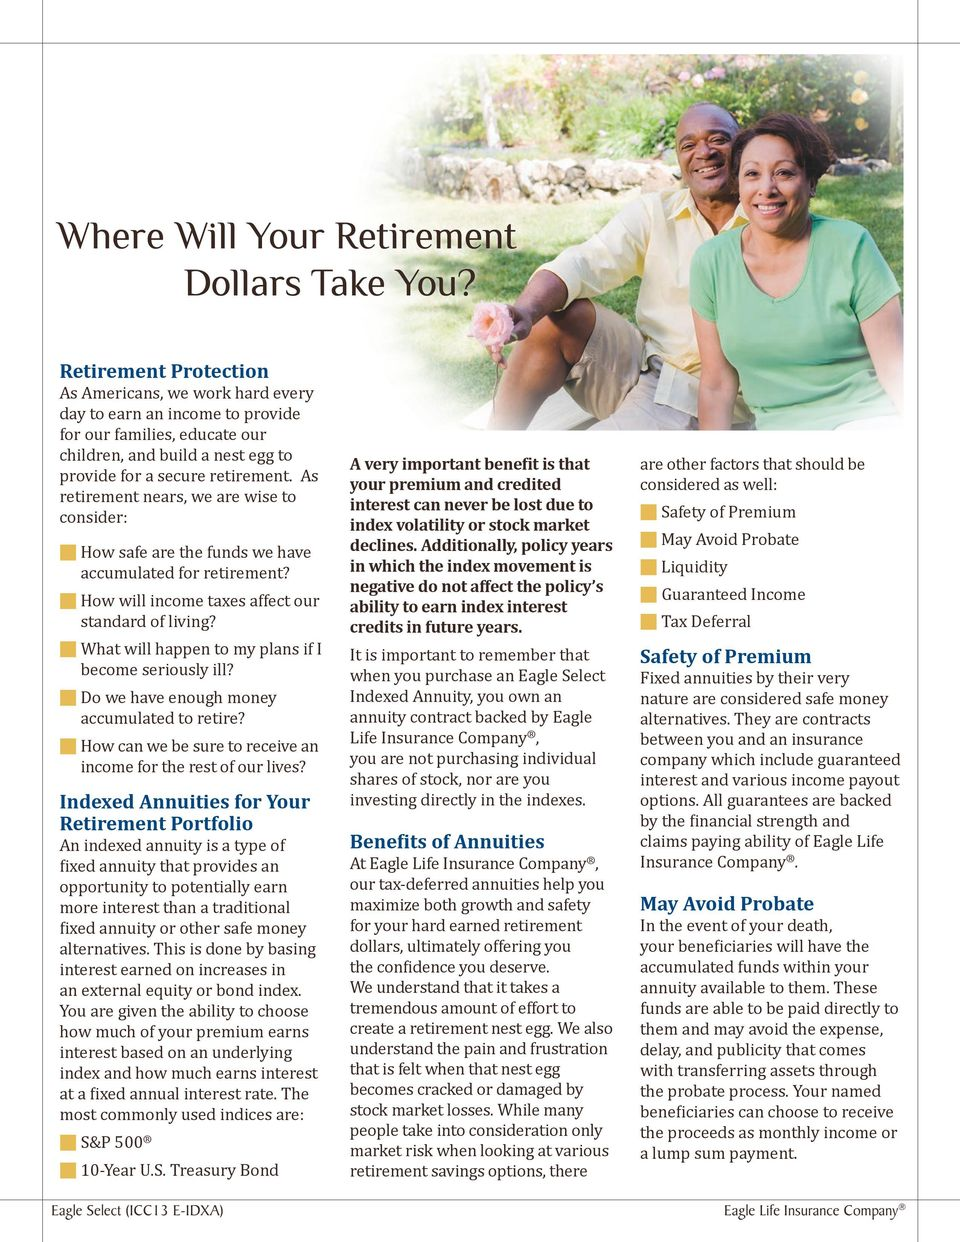 As retirement nears, we are wise to consider: How safe are the funds we have accumulated for retirement? How will income taxes affect our standard of living?